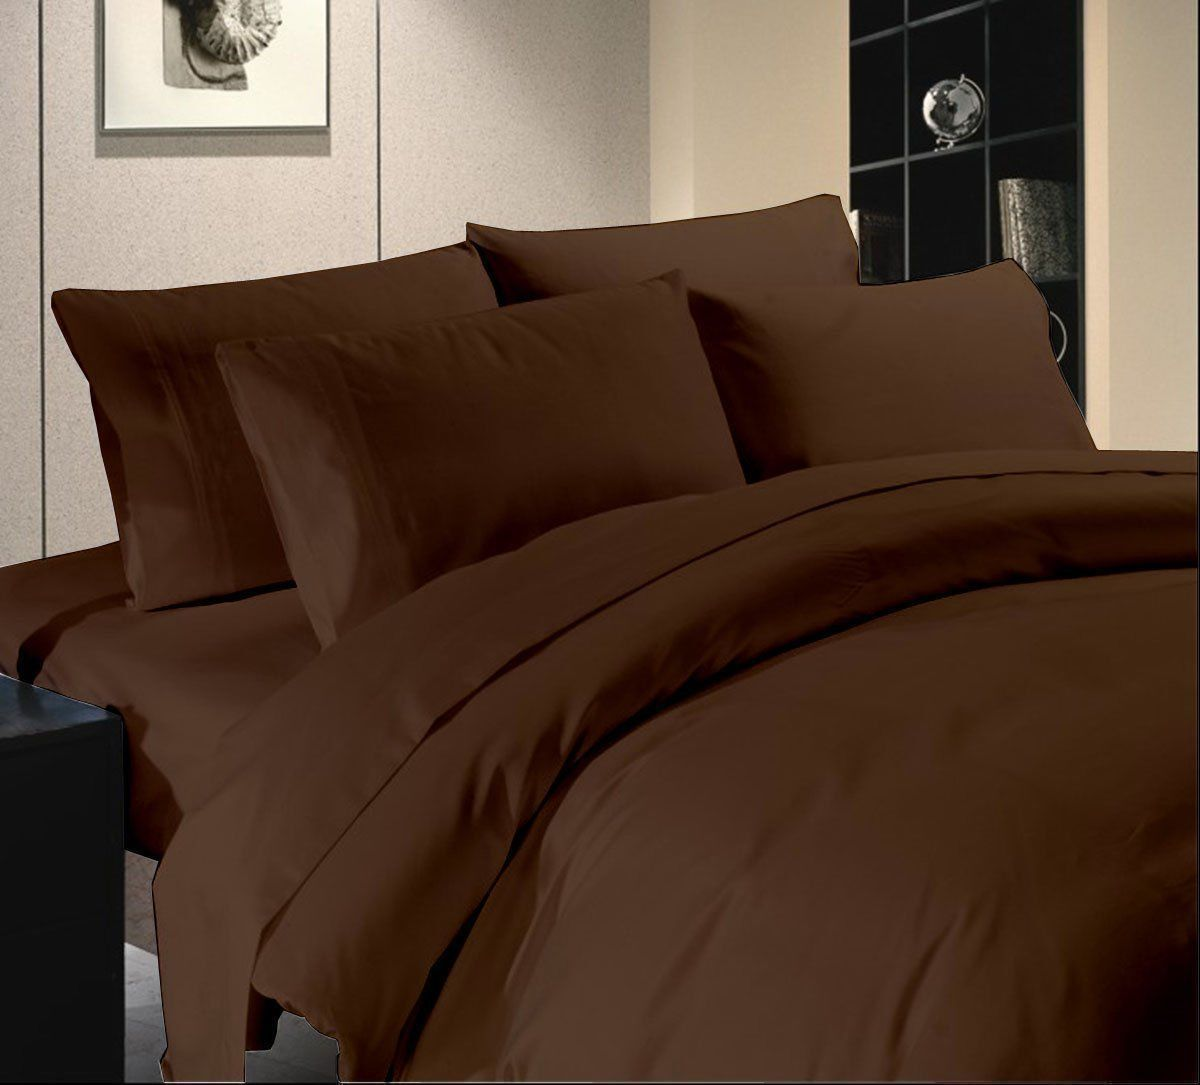 DUVET SET + FITTED SHEET CHOCOLATE SOLID PREMIUM BEDDING ALL SIZES 1000 TC EGY